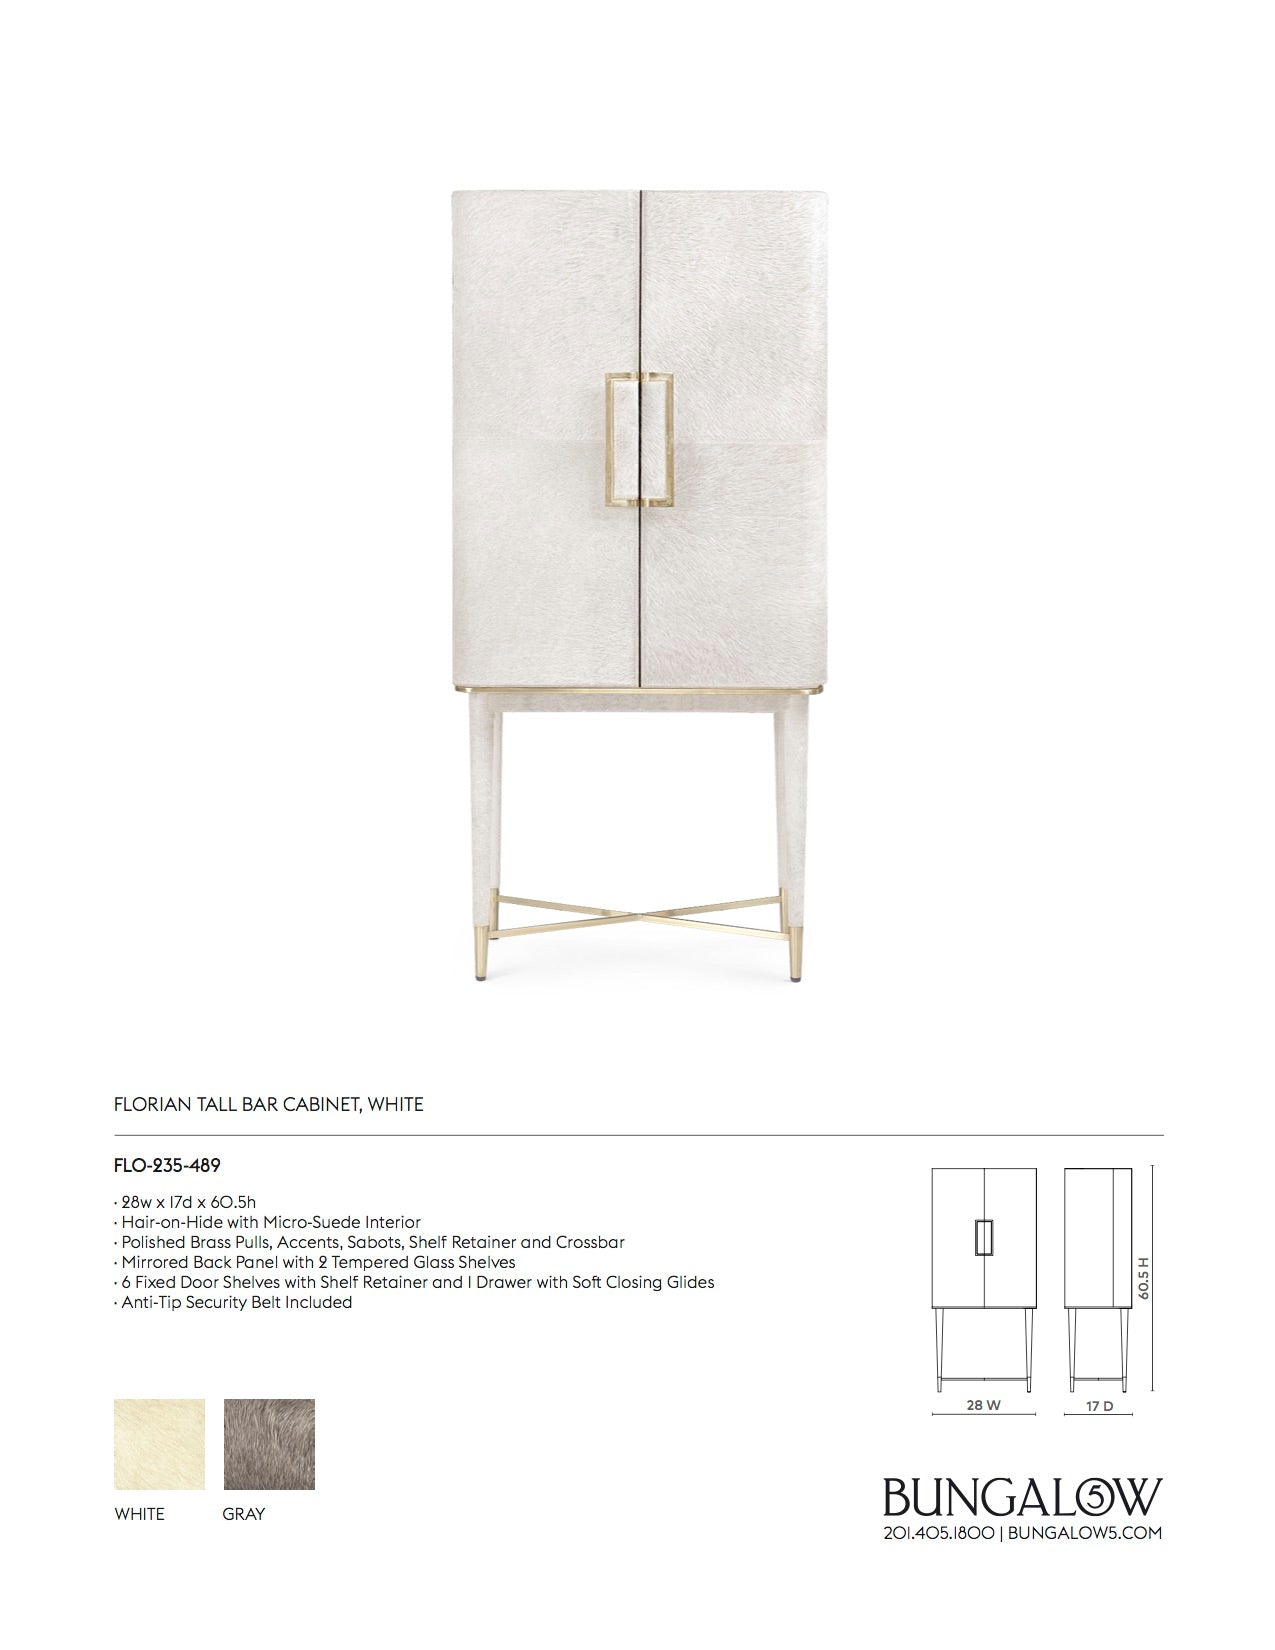 Bungalow 5 Florian Tall Bar Cabinet White Tearsheet